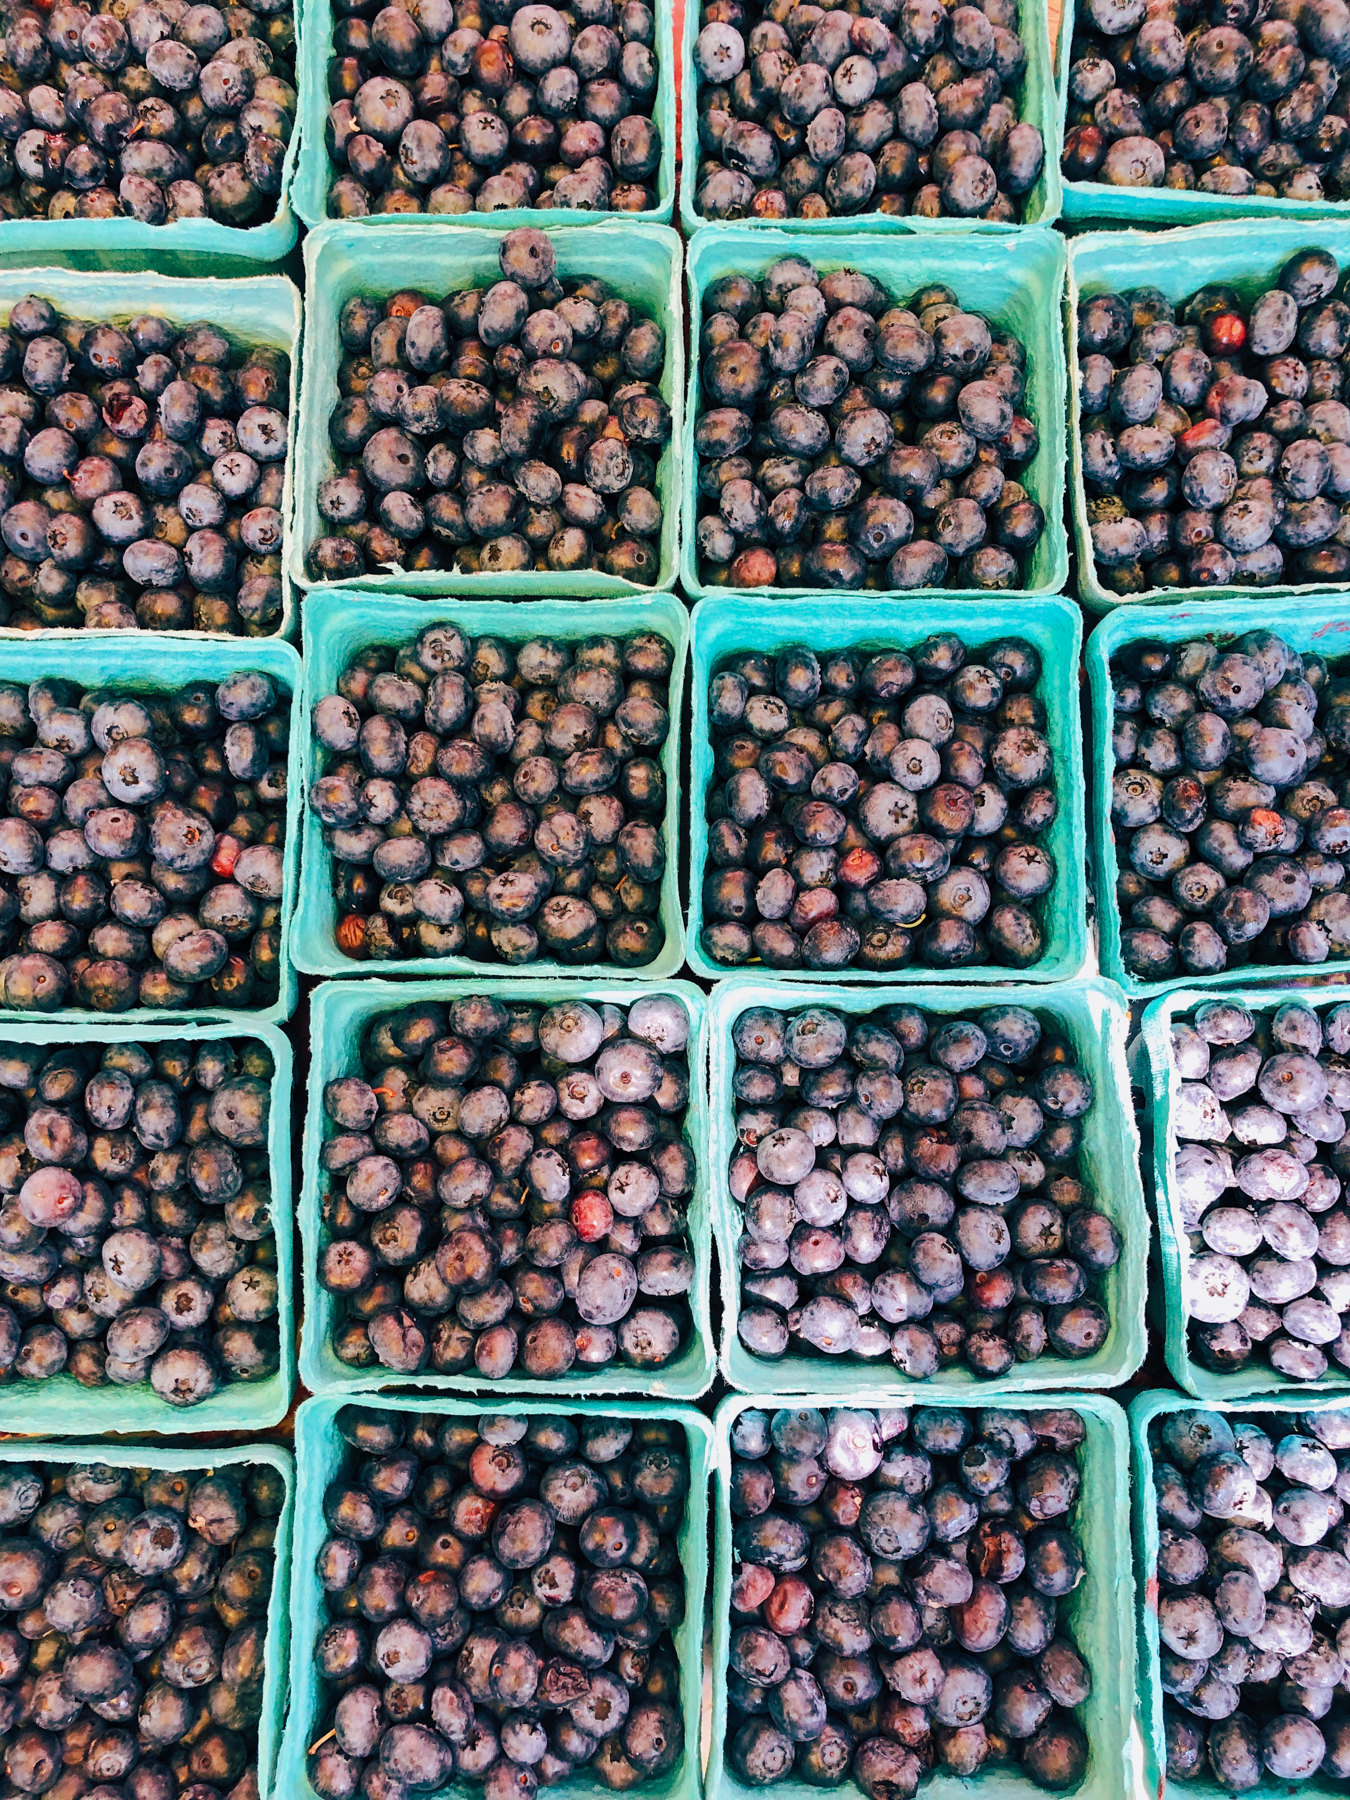 Fresh blueberries at the 79th St. Greenmarket